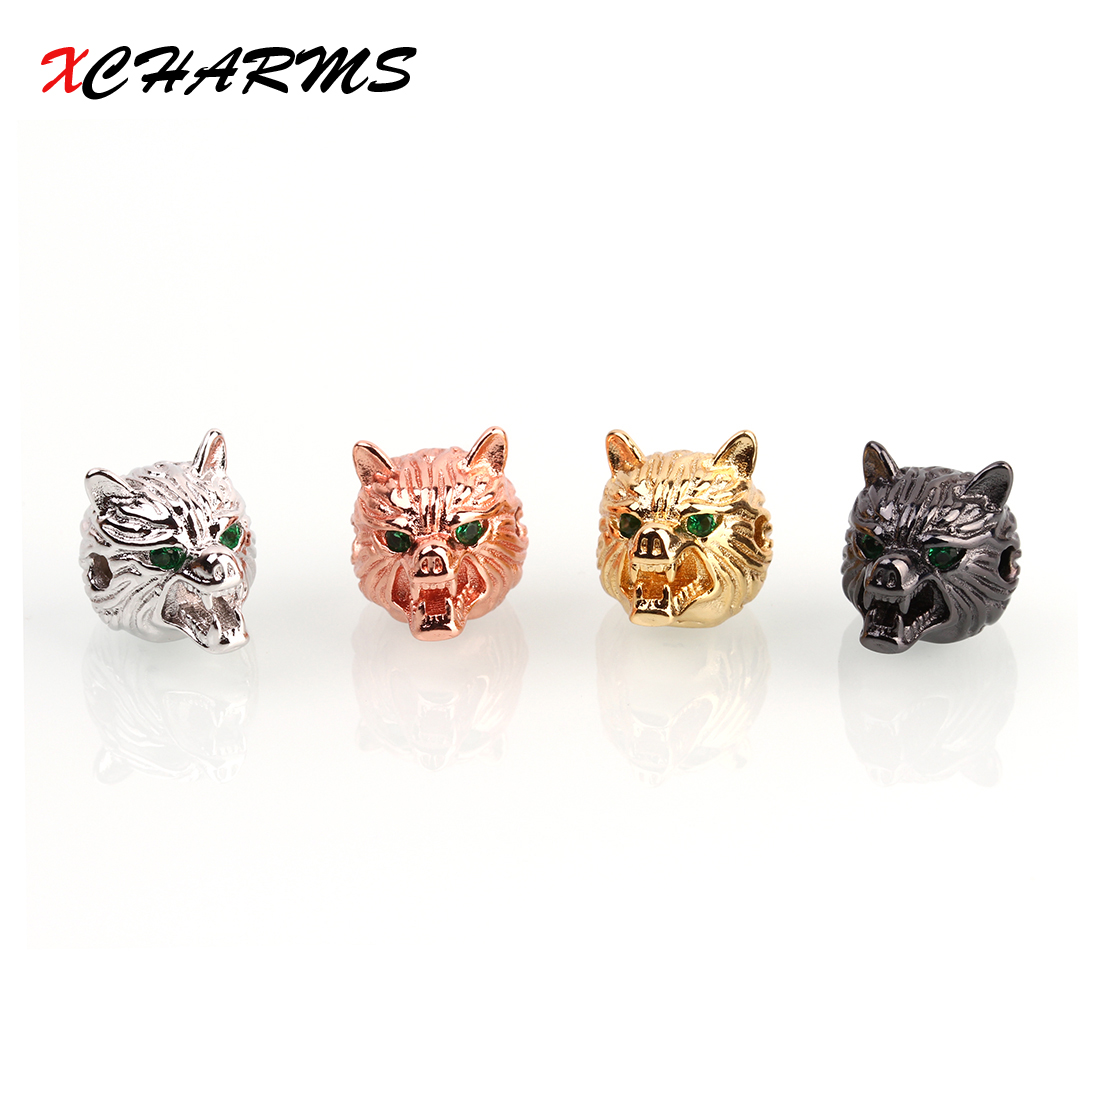 XCHARMS 15*11mm Black CZ Wolf head Spacer Beads Diy Copper Beads for Bracelets Jewlery Making Materials Findings Wholesale